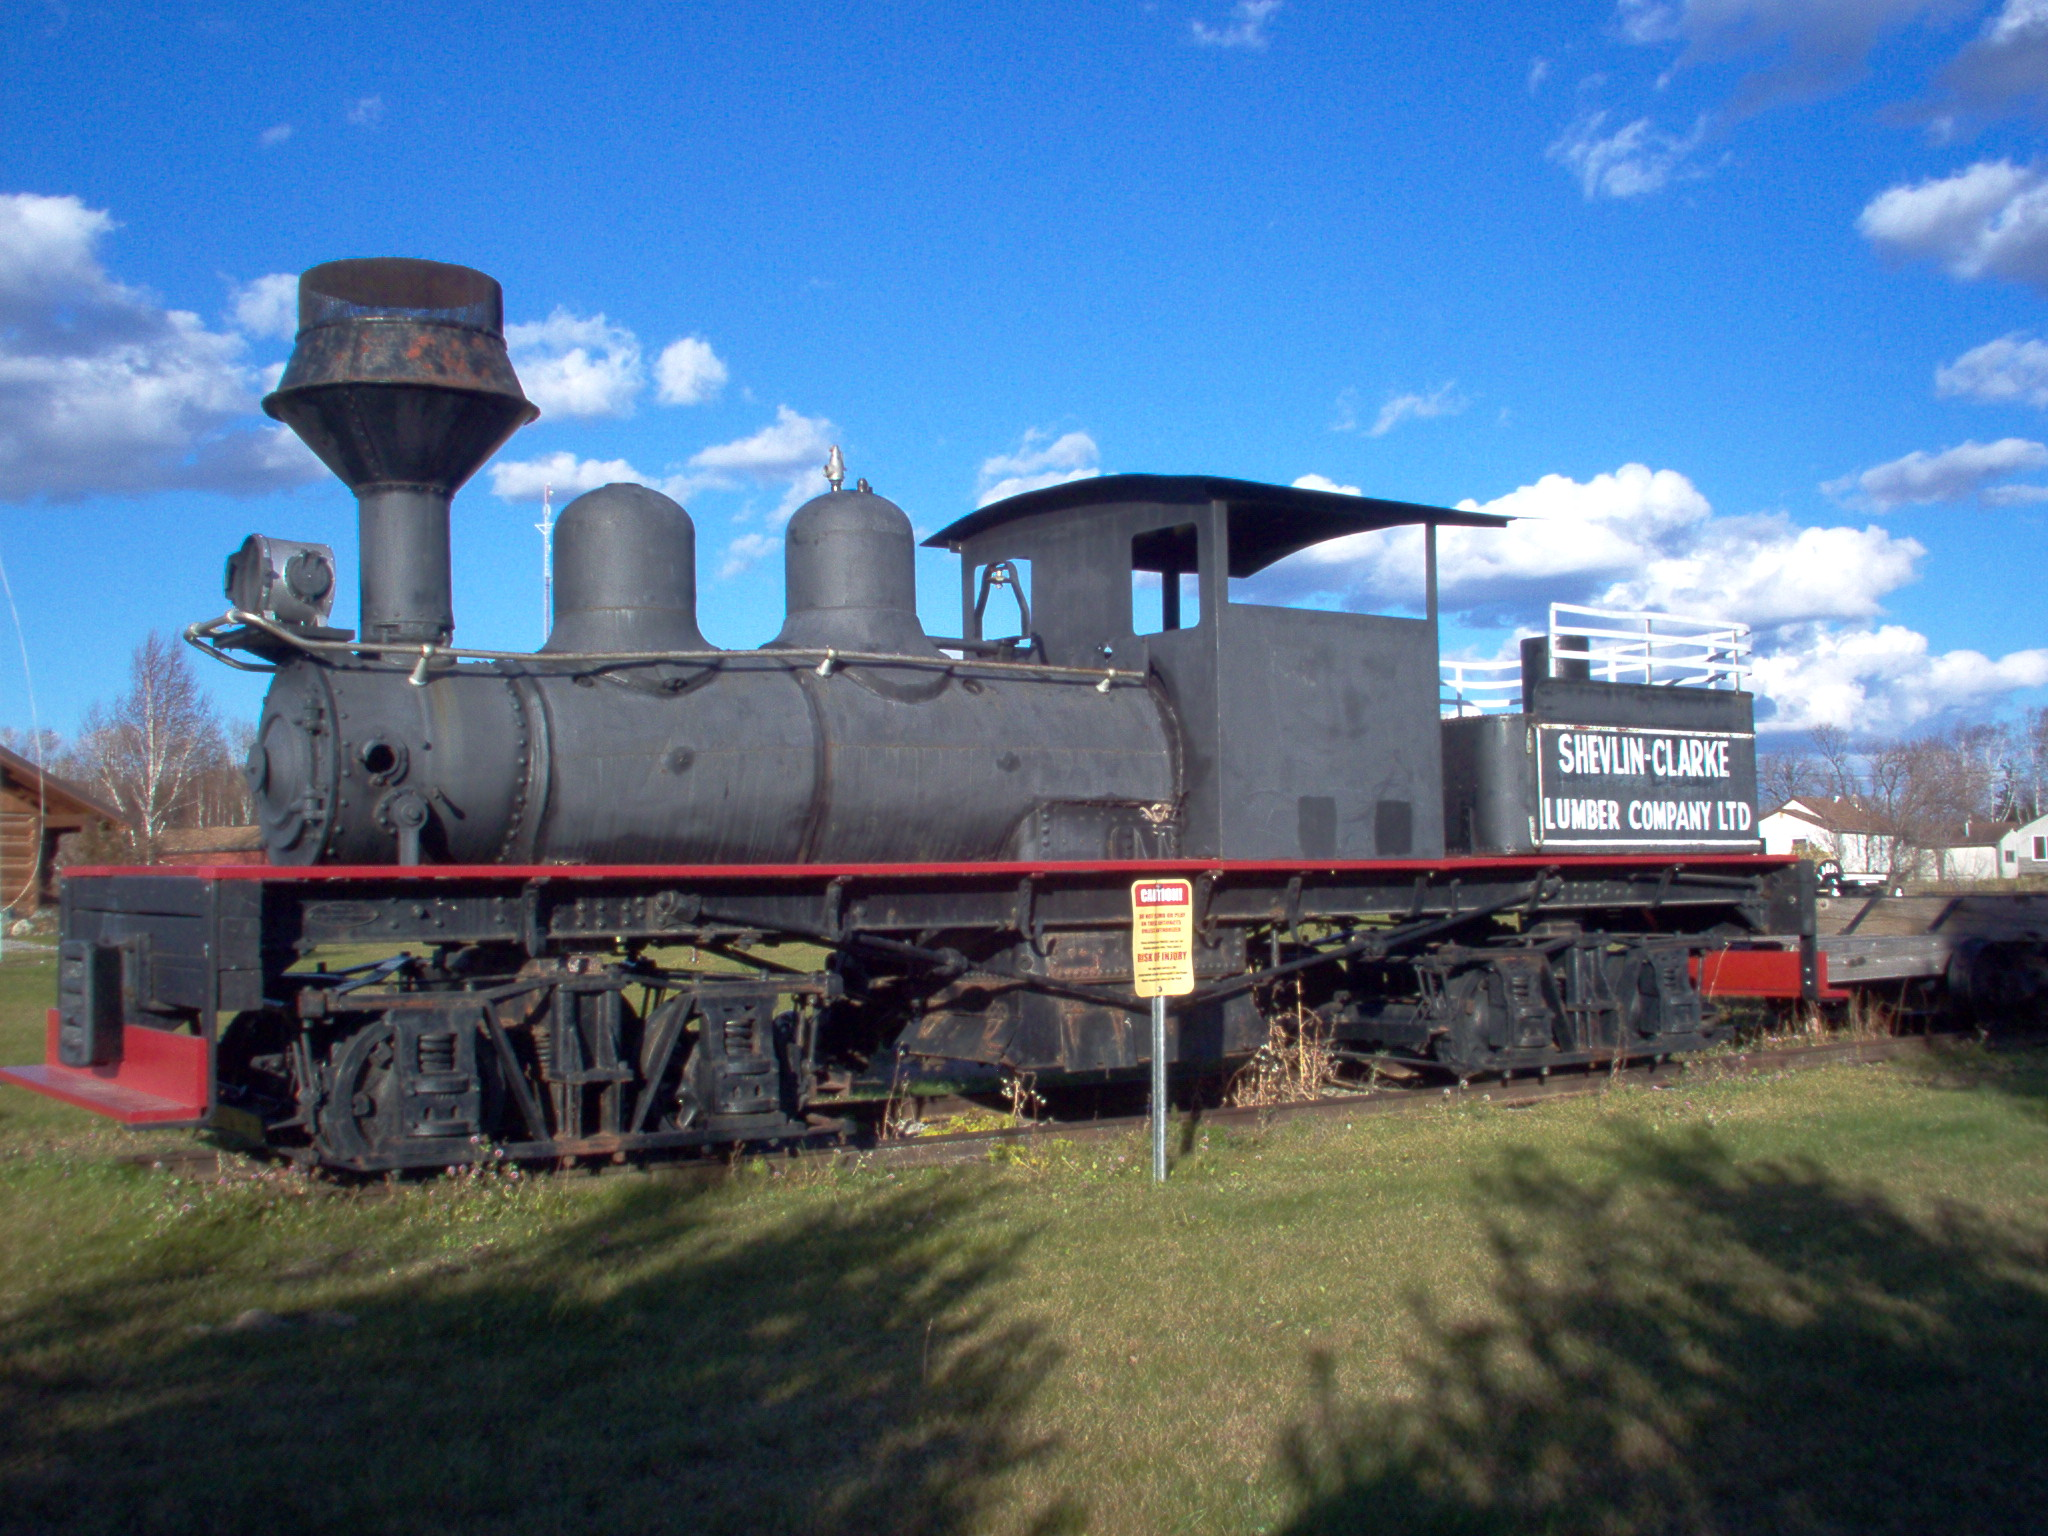 The train in the wastelands of quebec